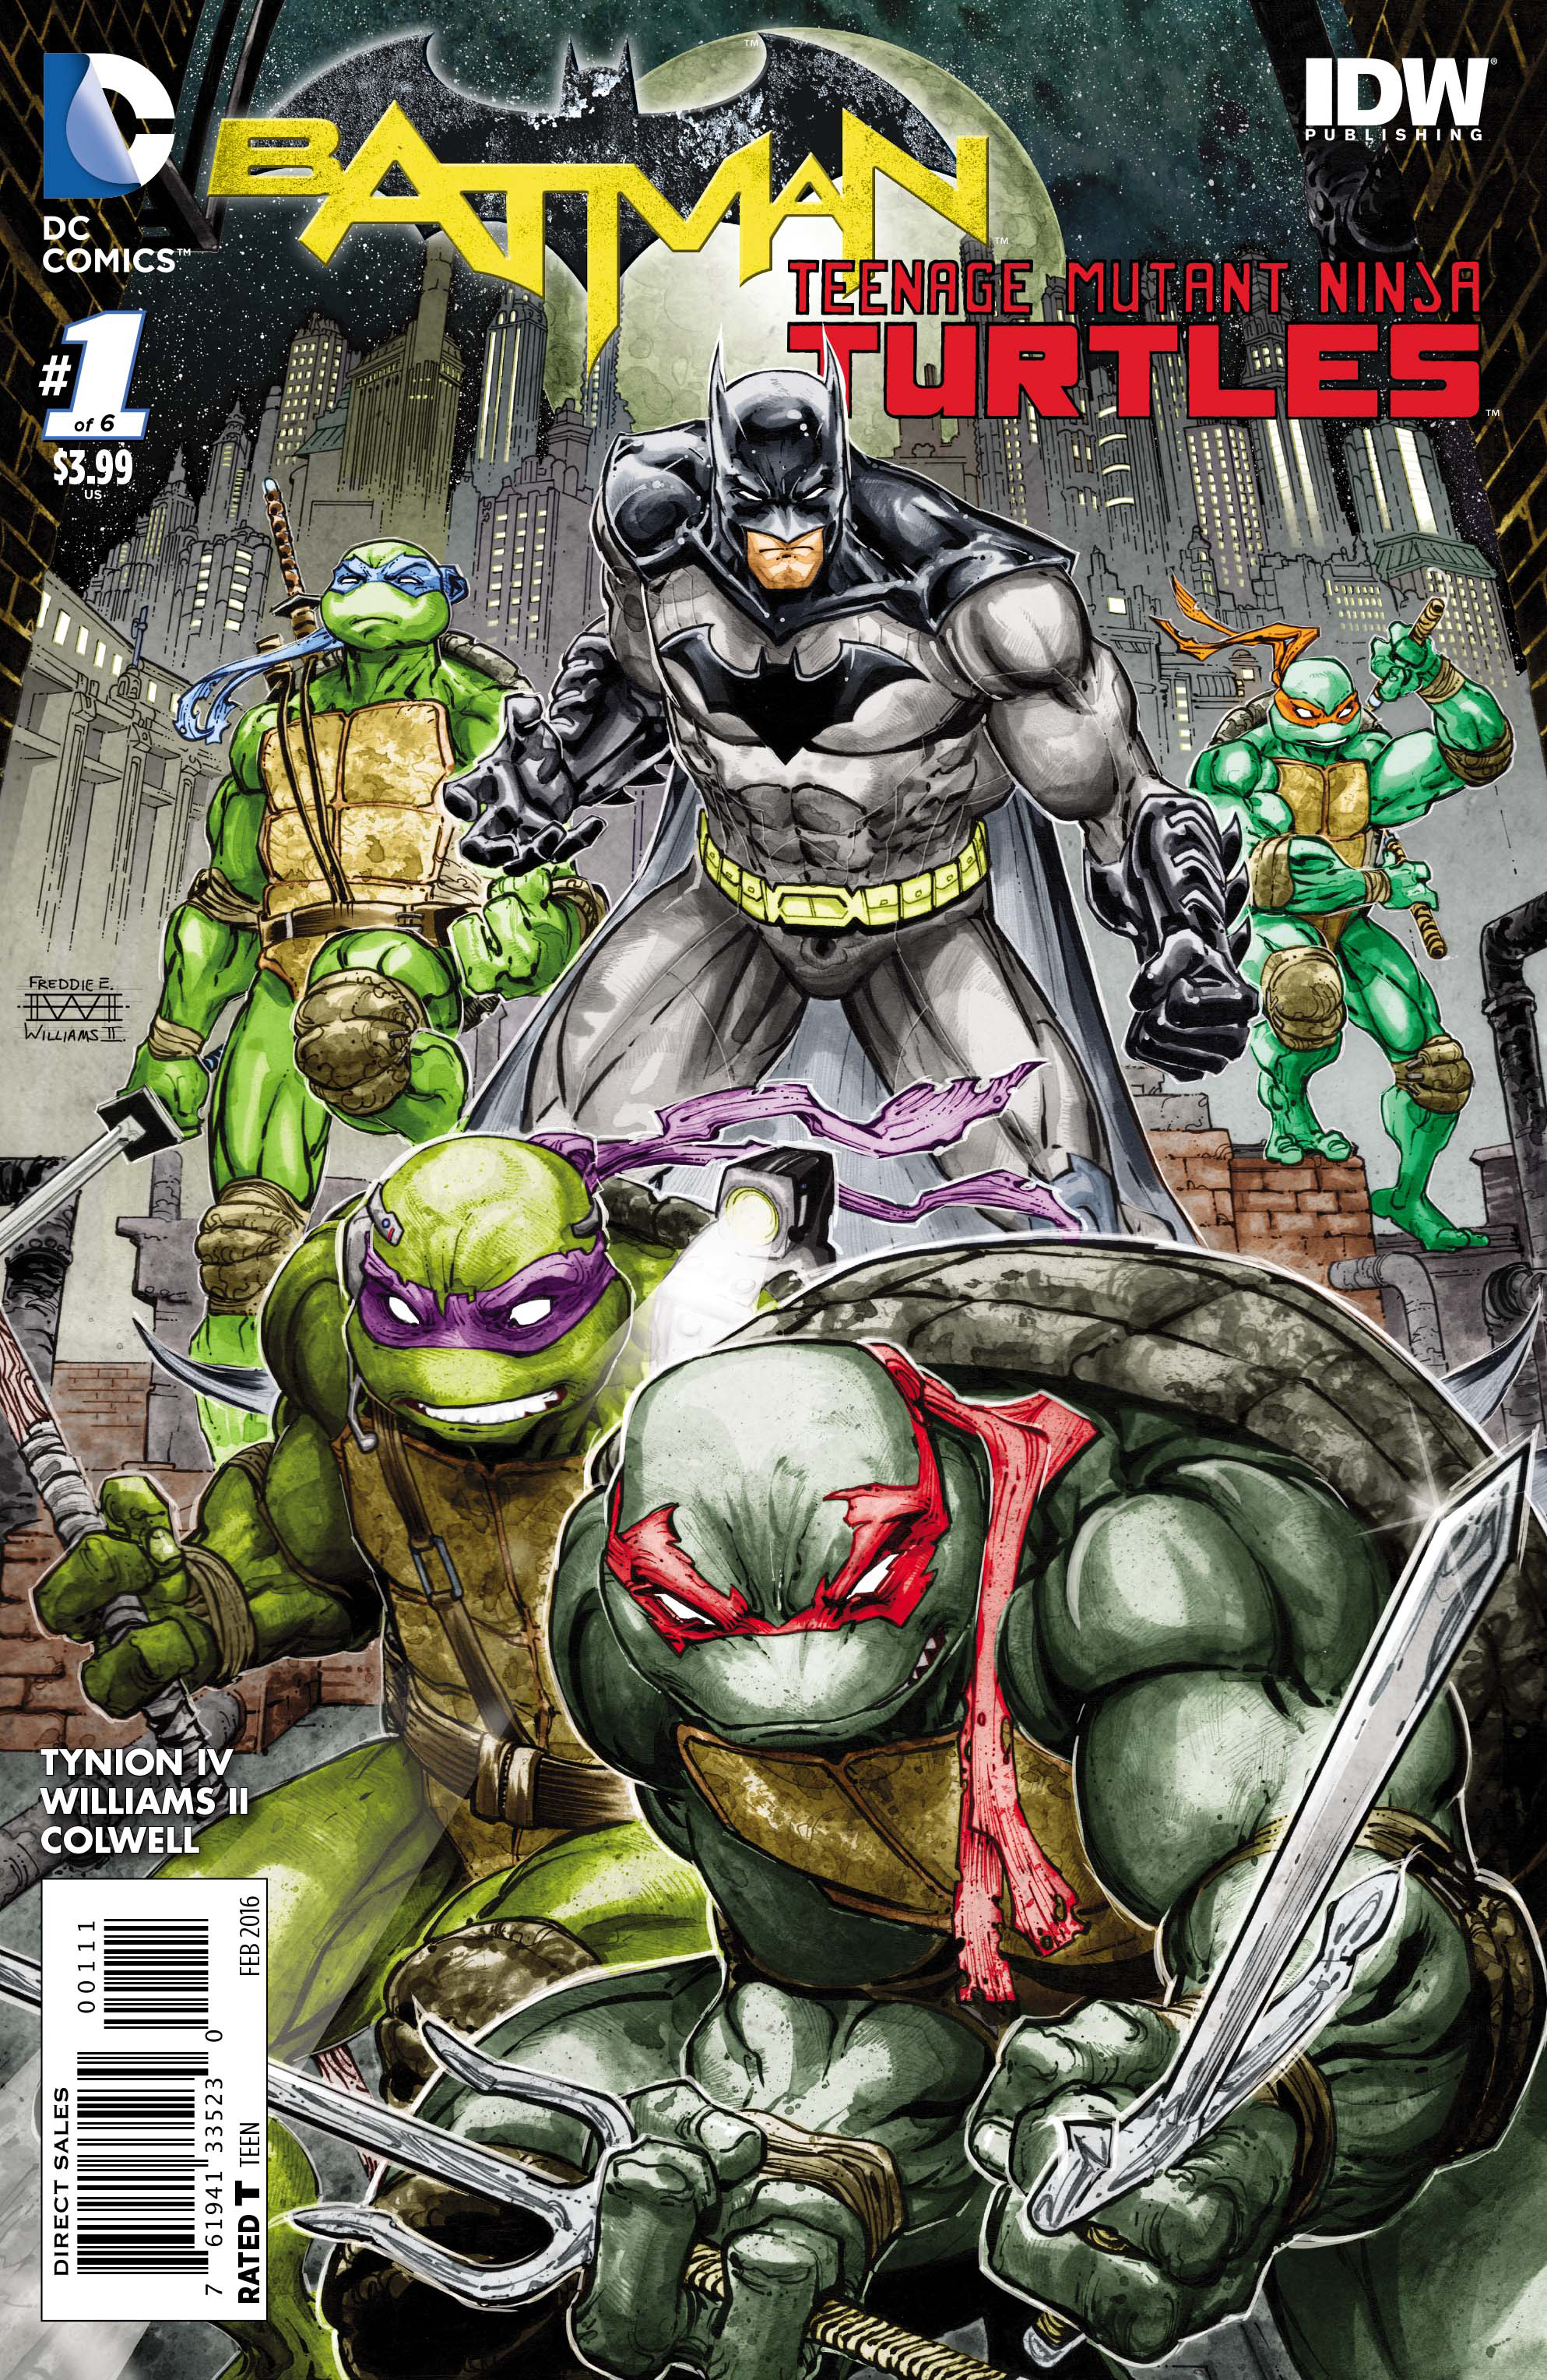 BATMAN TEENAGE MUTANT NINJA TURTLES #1 (OF 6)